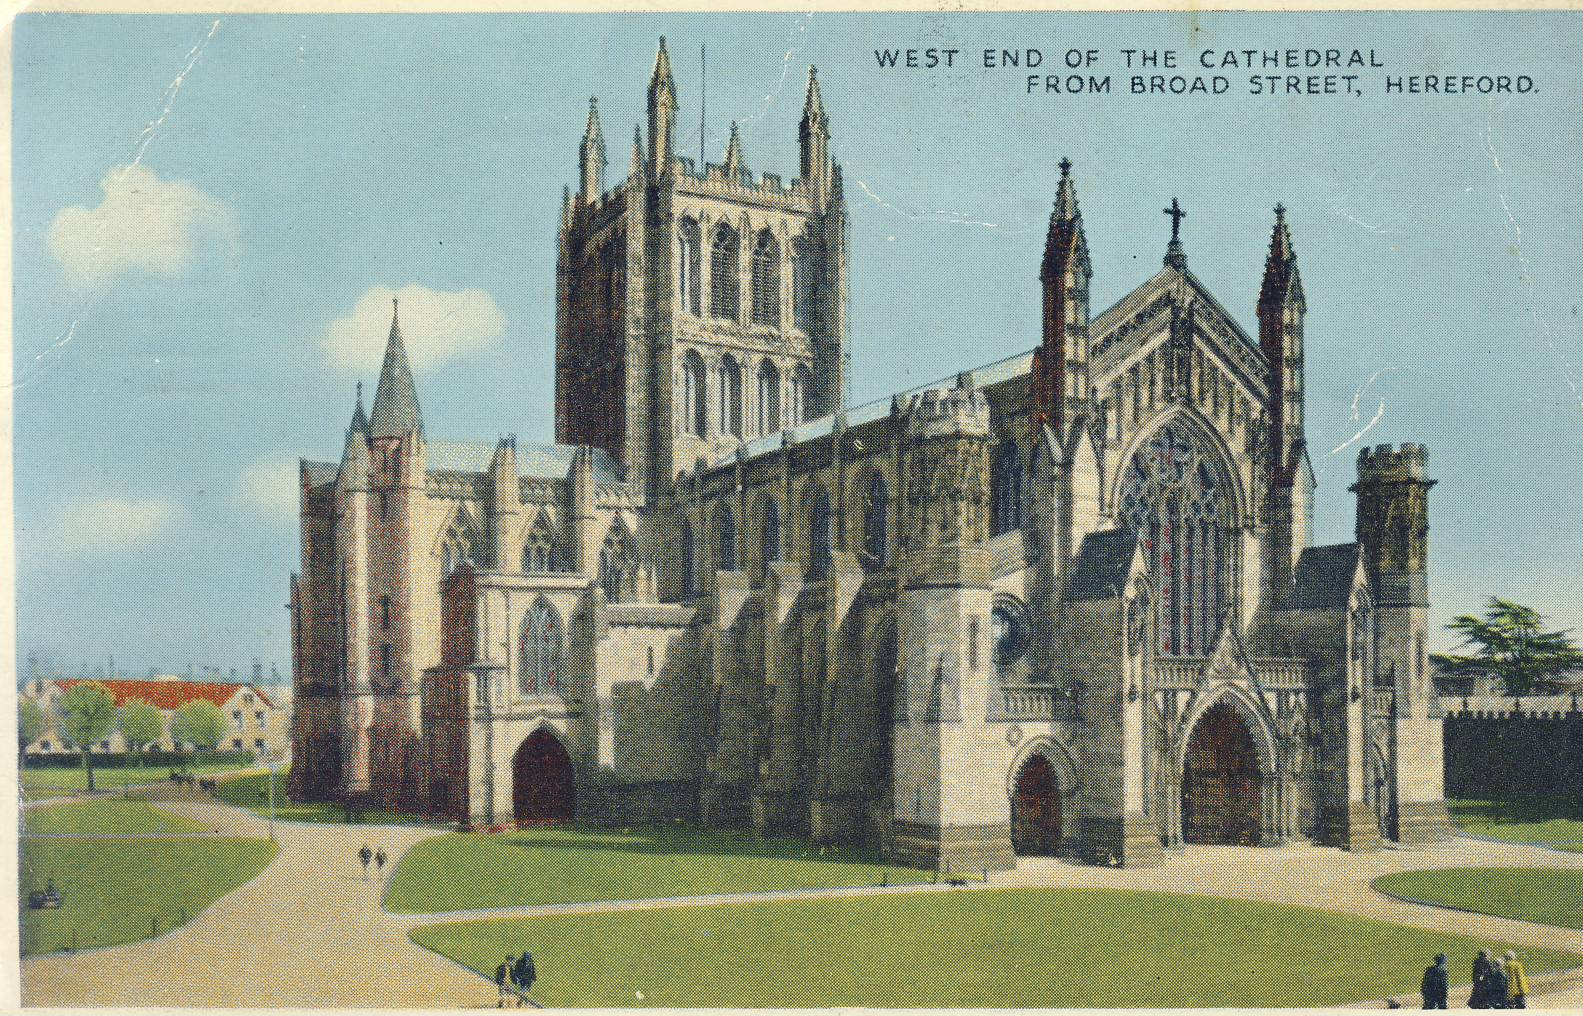 1959 HEREFORD Cathedral Old Postcard refP9 Pre-owned used condition with name address and message on reverse. CDS postmark with special Express Good Wishes by Greetings Telegrams oblong mark.